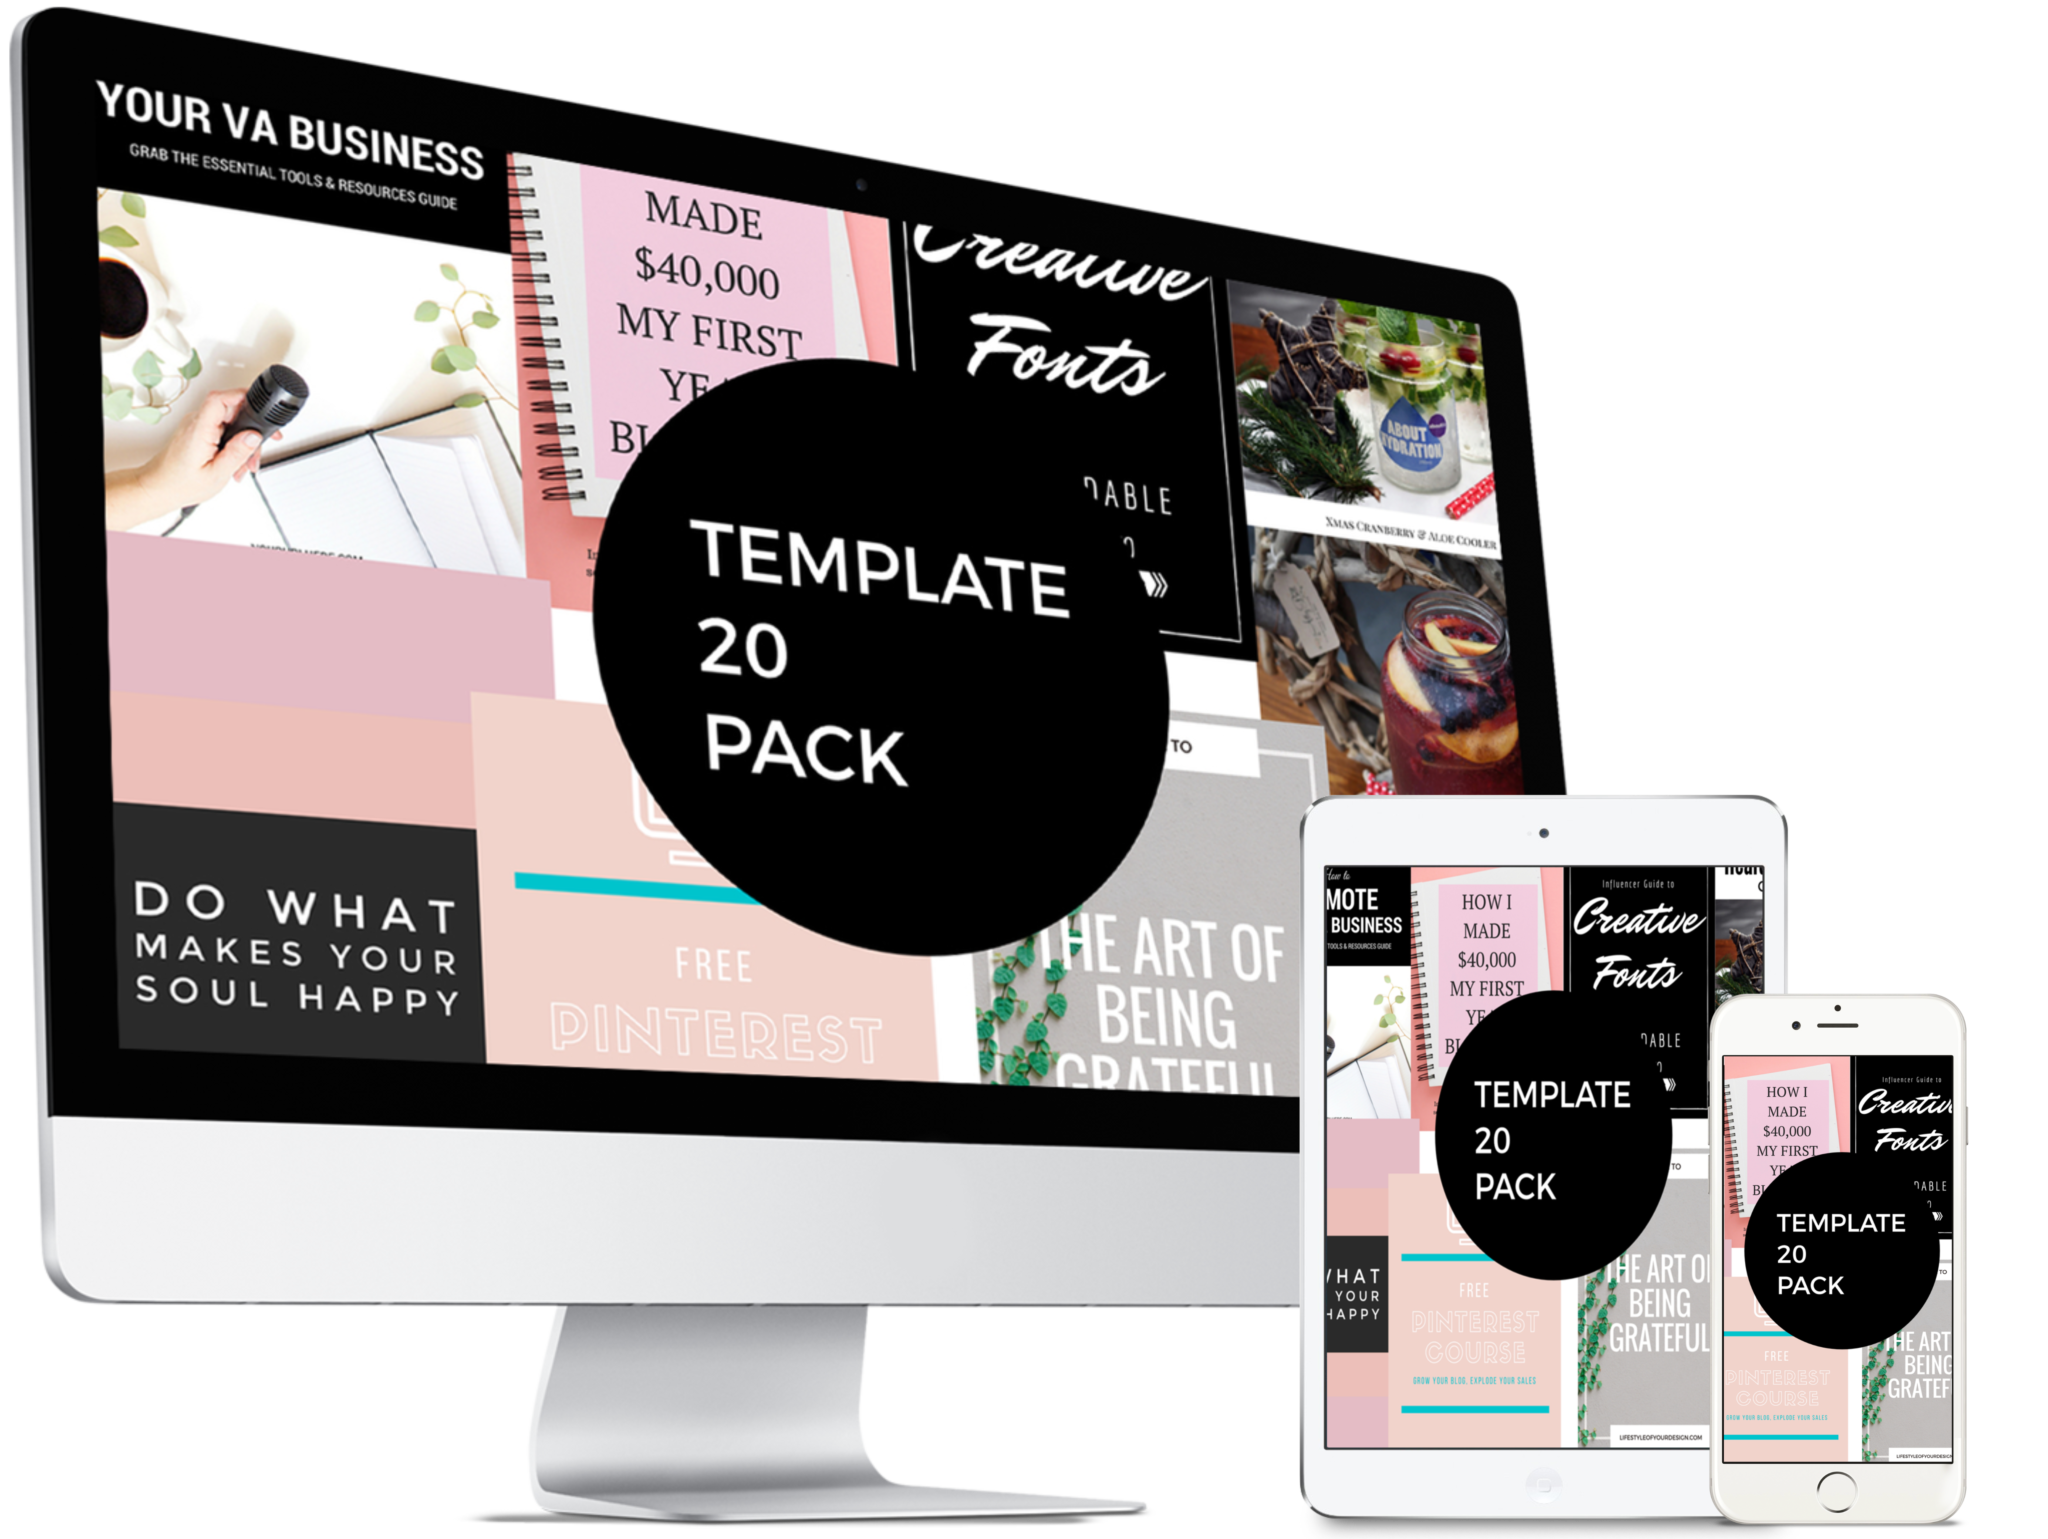 Pinterest Template 10 Pack - Canva Fully editable for all purposes. Use across any social media platform, blog post header for business marketing, sales and personal use. Pinterest pin designs up to date styles and color trends, fonts, typography to keep your help grow your brand, get more traffic, impressions, CTR, engagement, and increase Profits